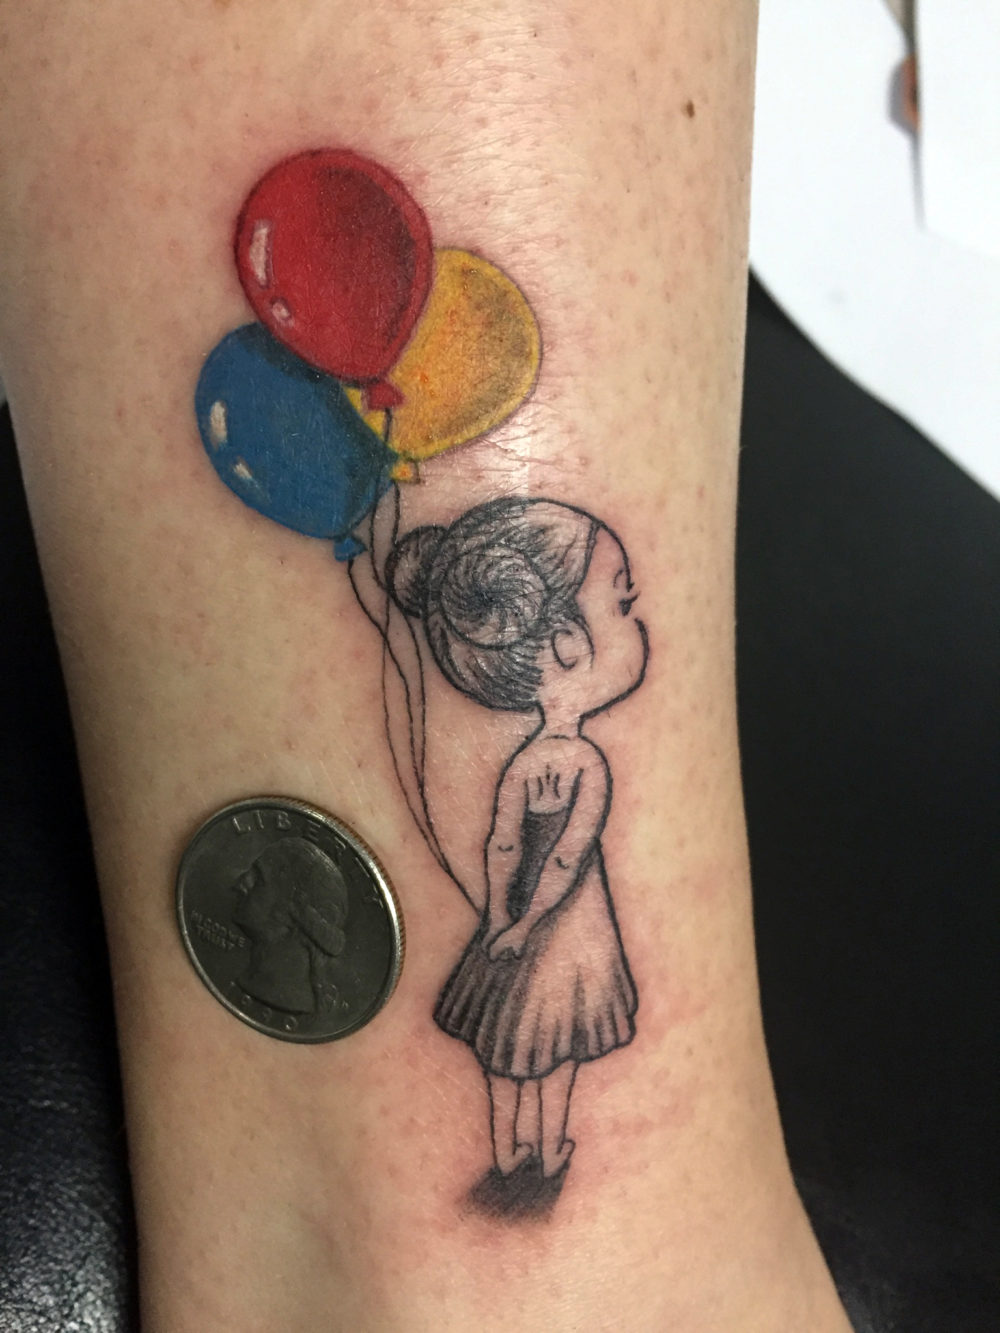 Q Tattoo in Huntington Beach - Karel Beck - the girl with her balloons - small tattoo